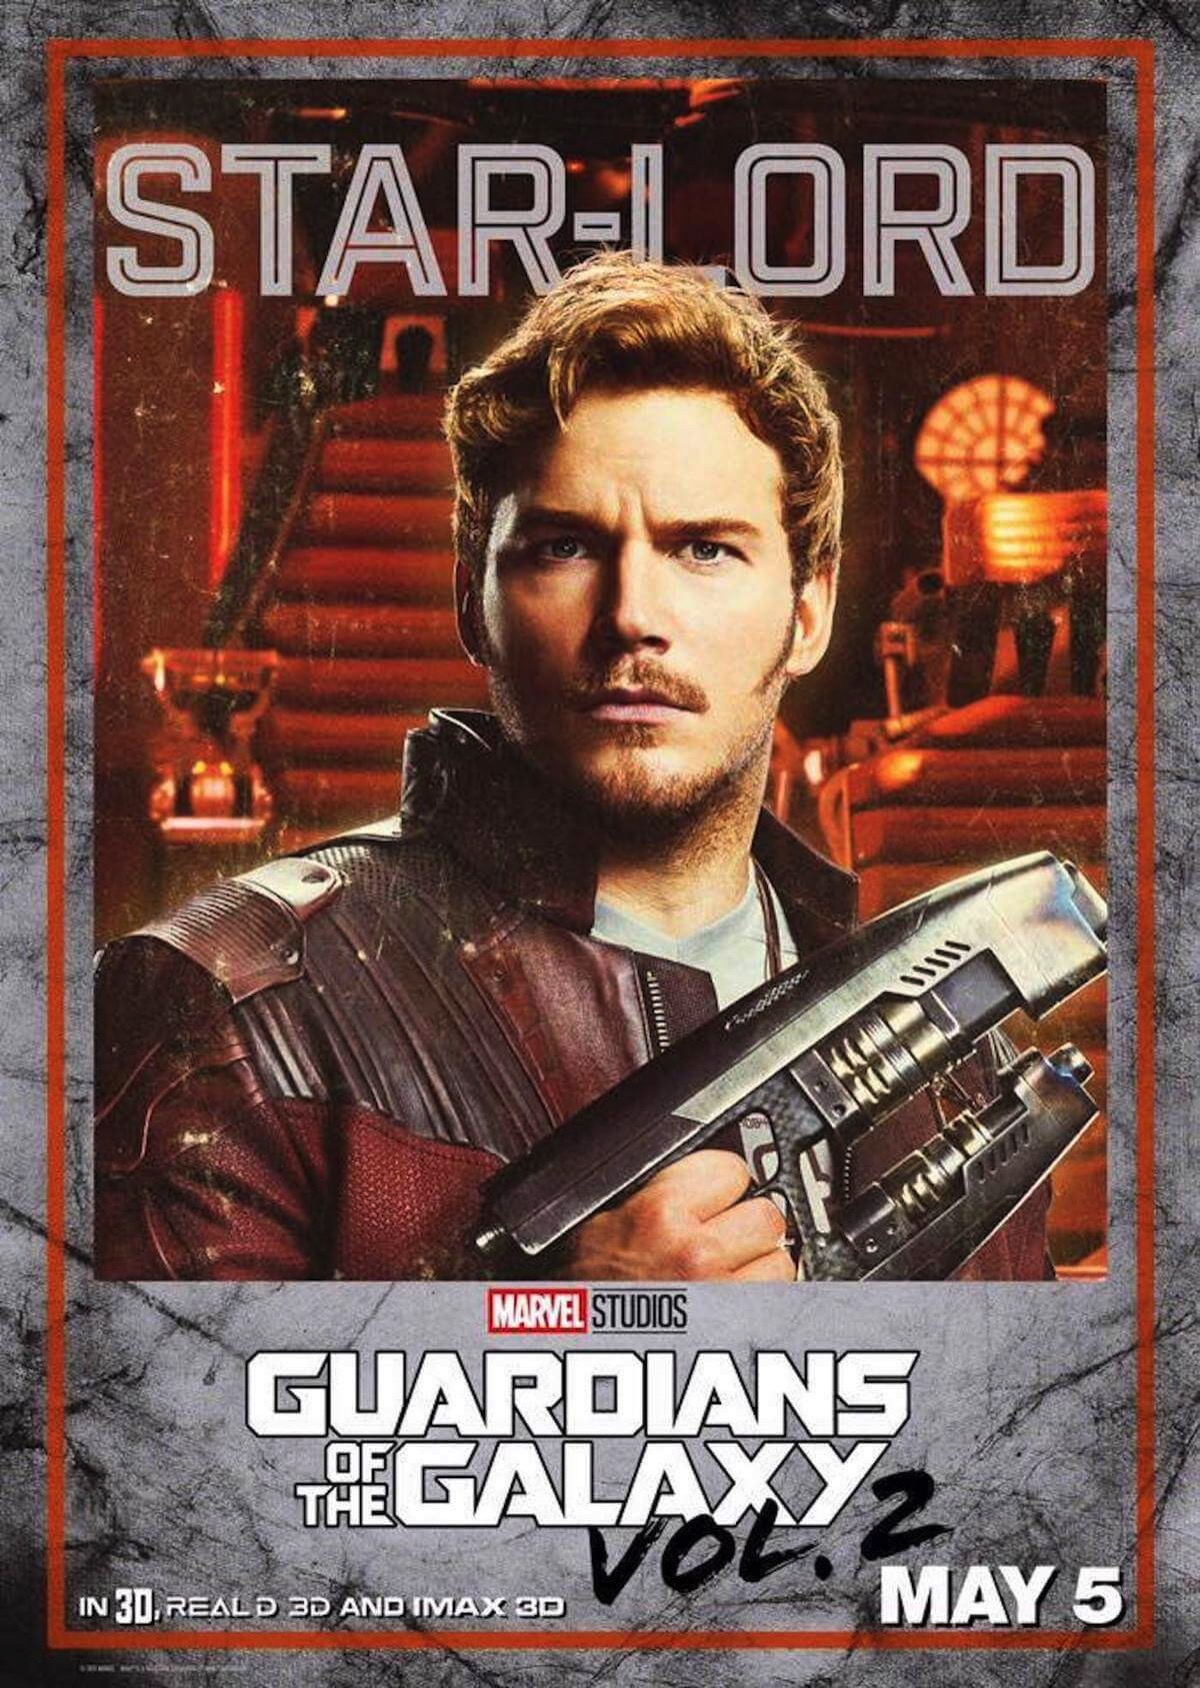 Guardians of the galaxy 2 poster star lord chris pratt